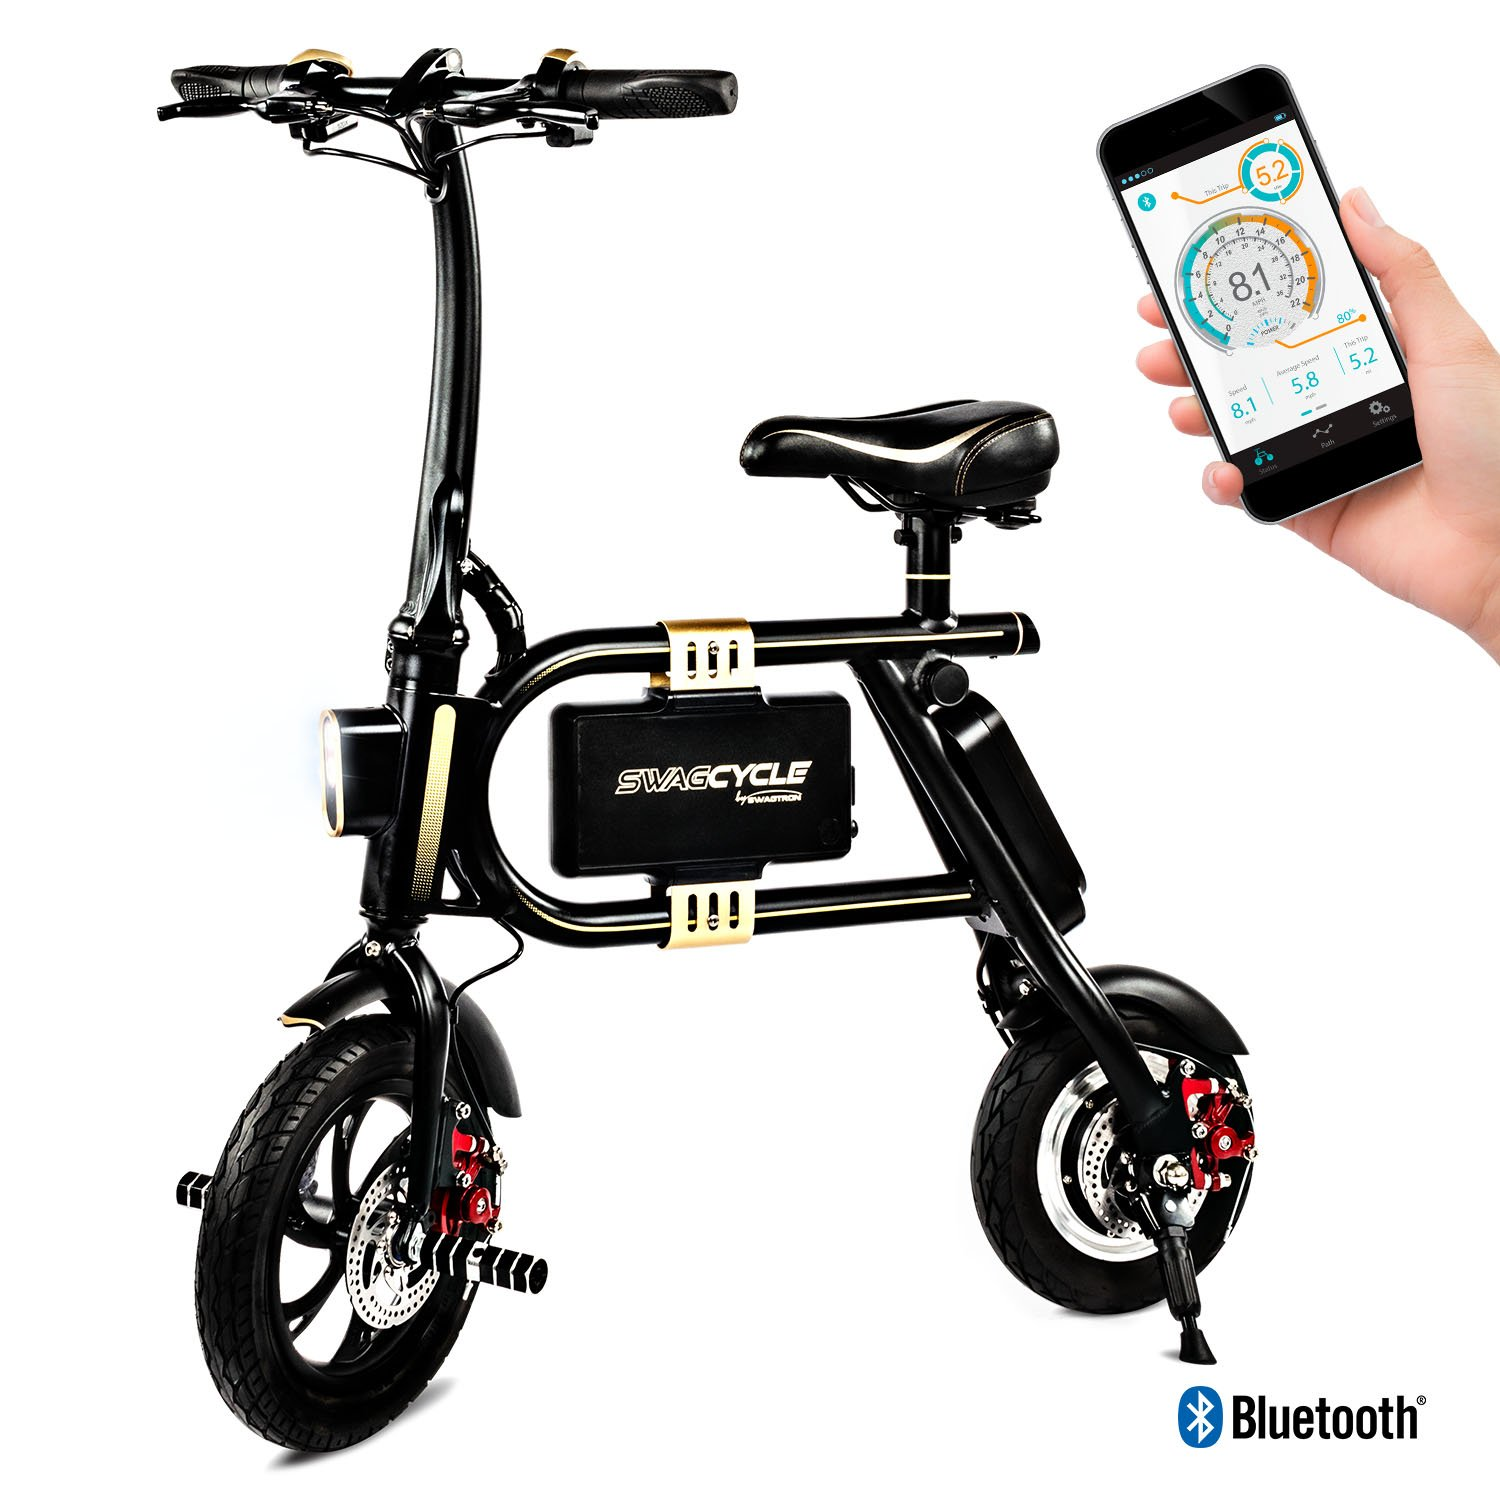 Swagtron E30512-2 SwagCycle Classic E-Bike - Folding Electric Bicycle with 10 Mile Range, Collapsible Frame, and Handlebar Display (Black) by Swagtron